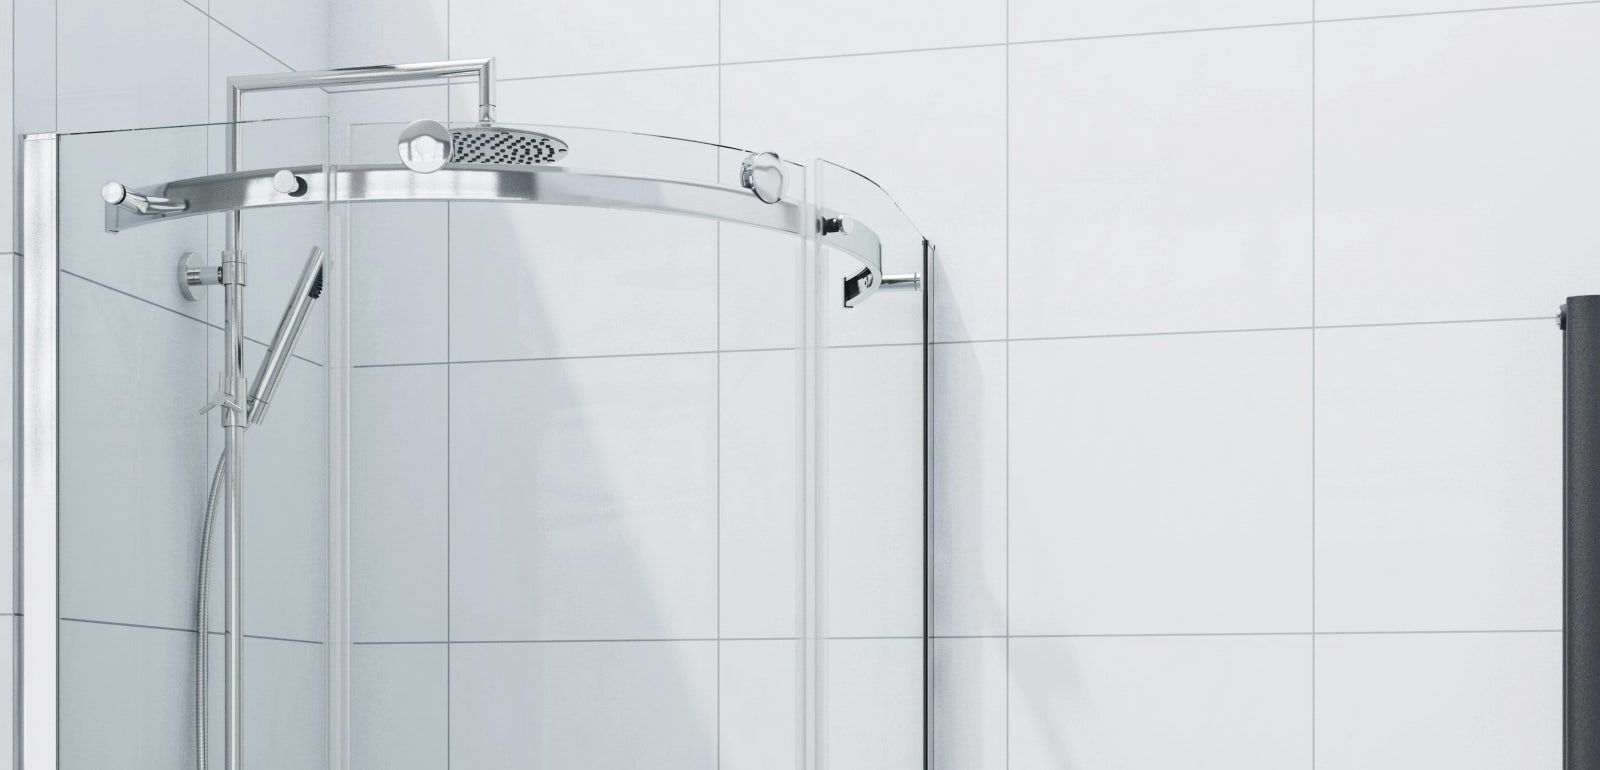 L Shaped Shower Tray Part - 38: Want To Install A Shower Enclosure? Read This Firstu2026